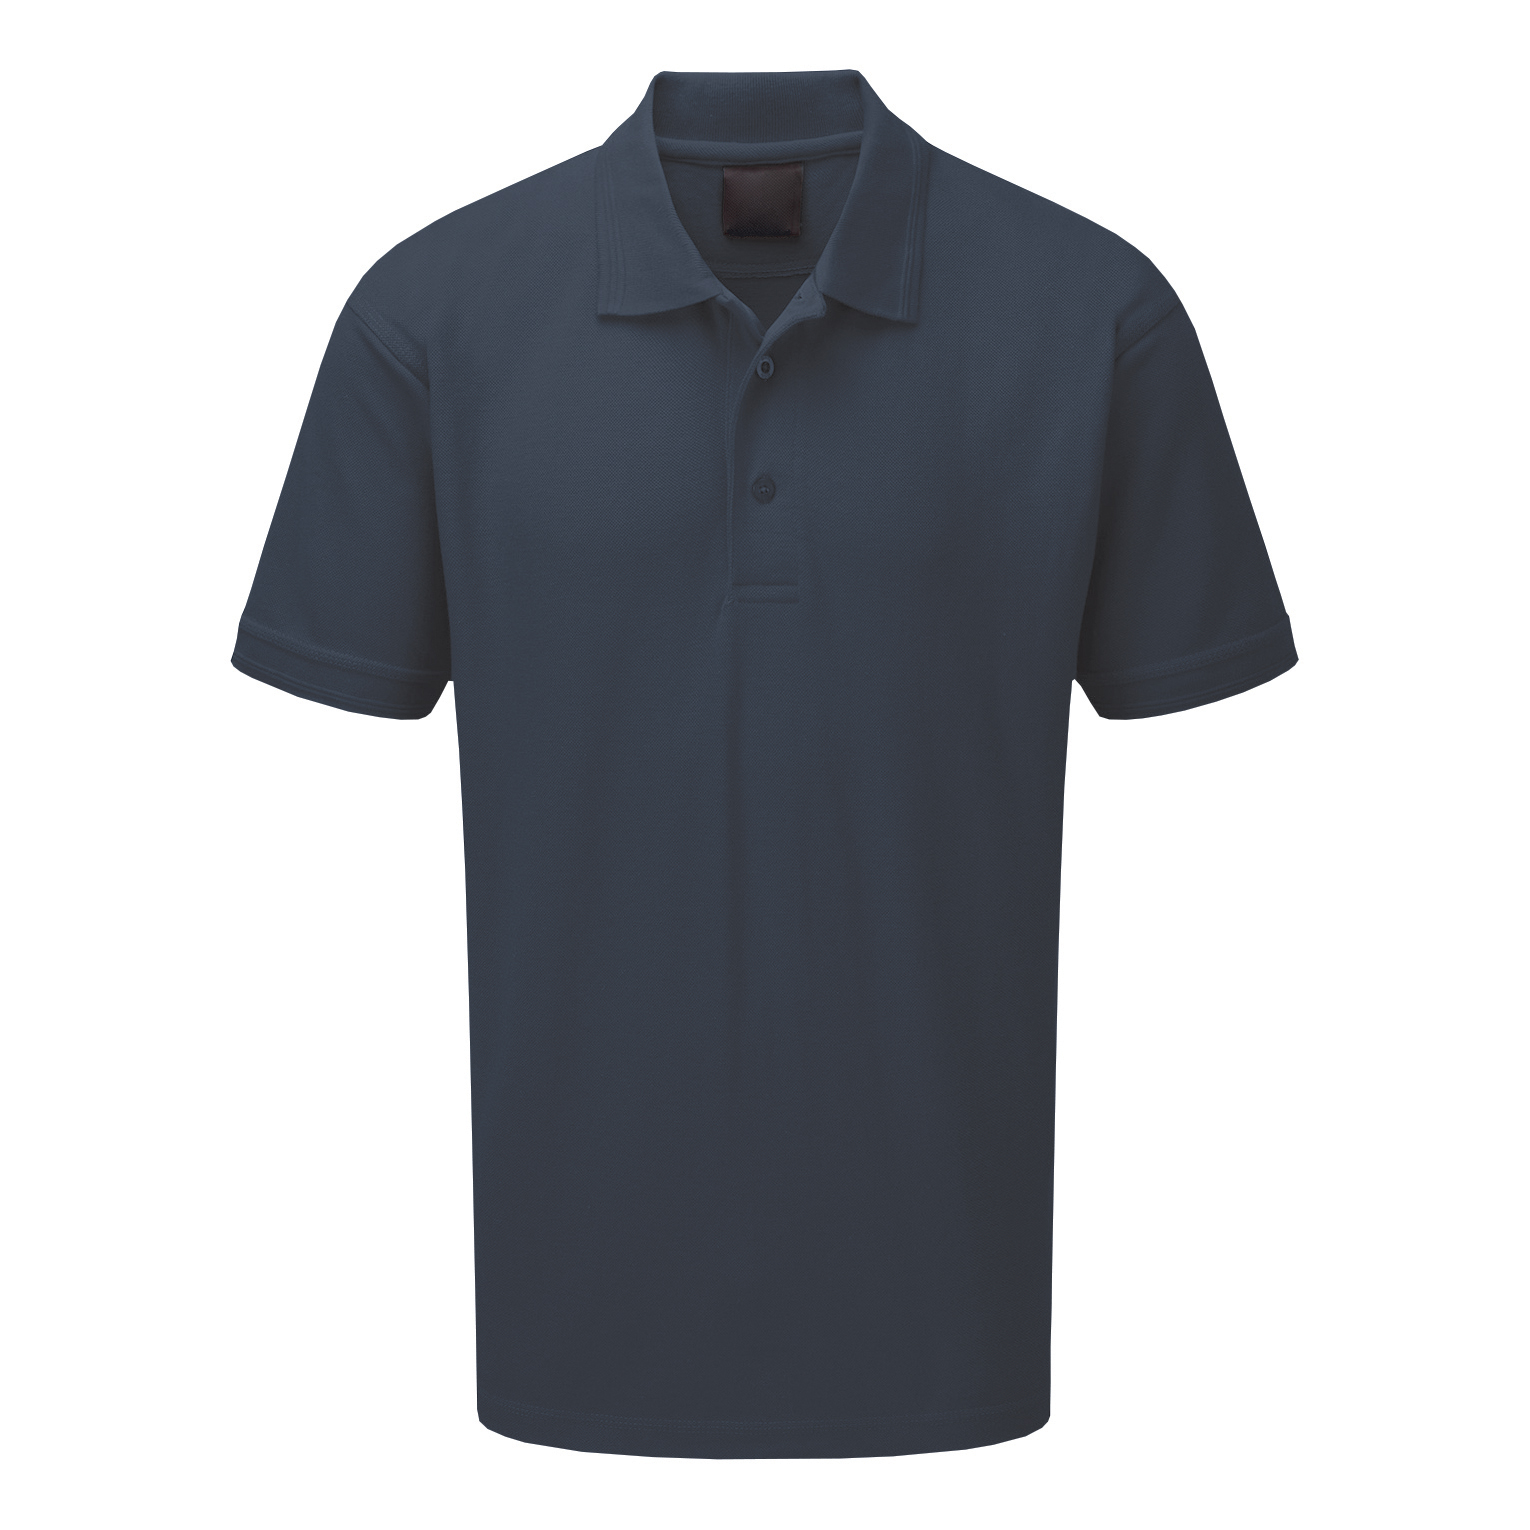 Premium Polo Triple Stitched Size XS Graphite *Approx 3 Day Leadtime*